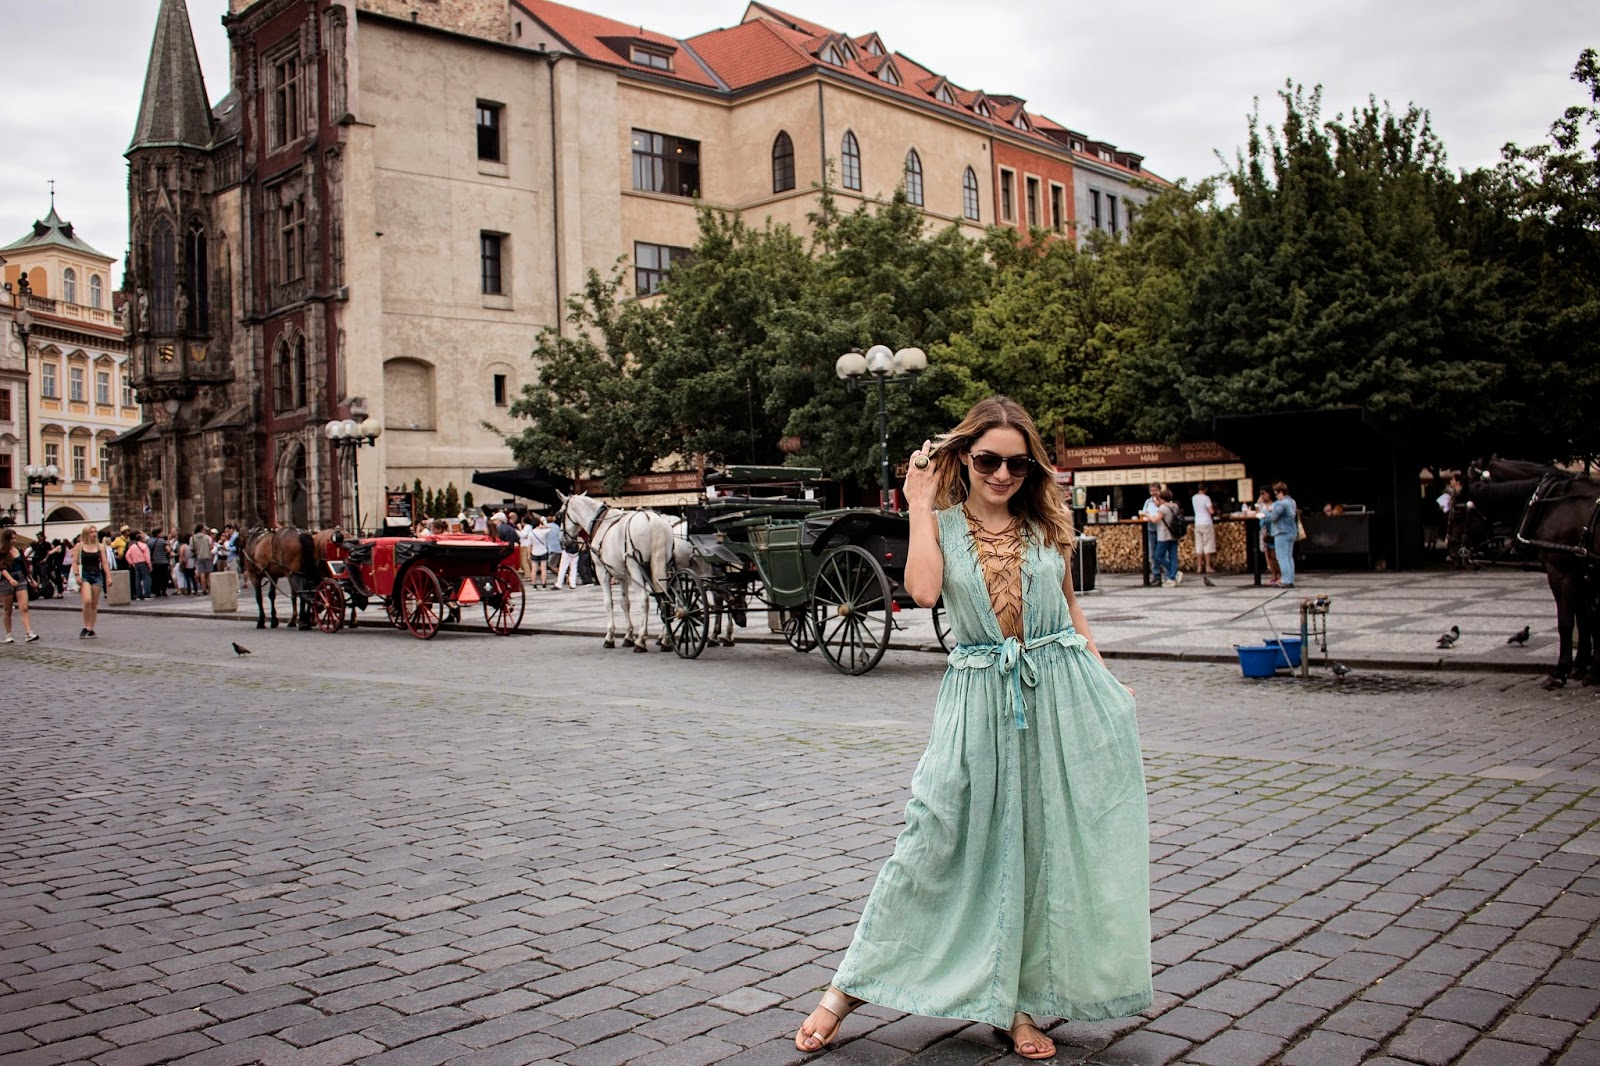 Whitney's Wonderland Top UK Luxury Travel and Fashion blogger tips on 5 things to do in Prague and what to wear in Prague